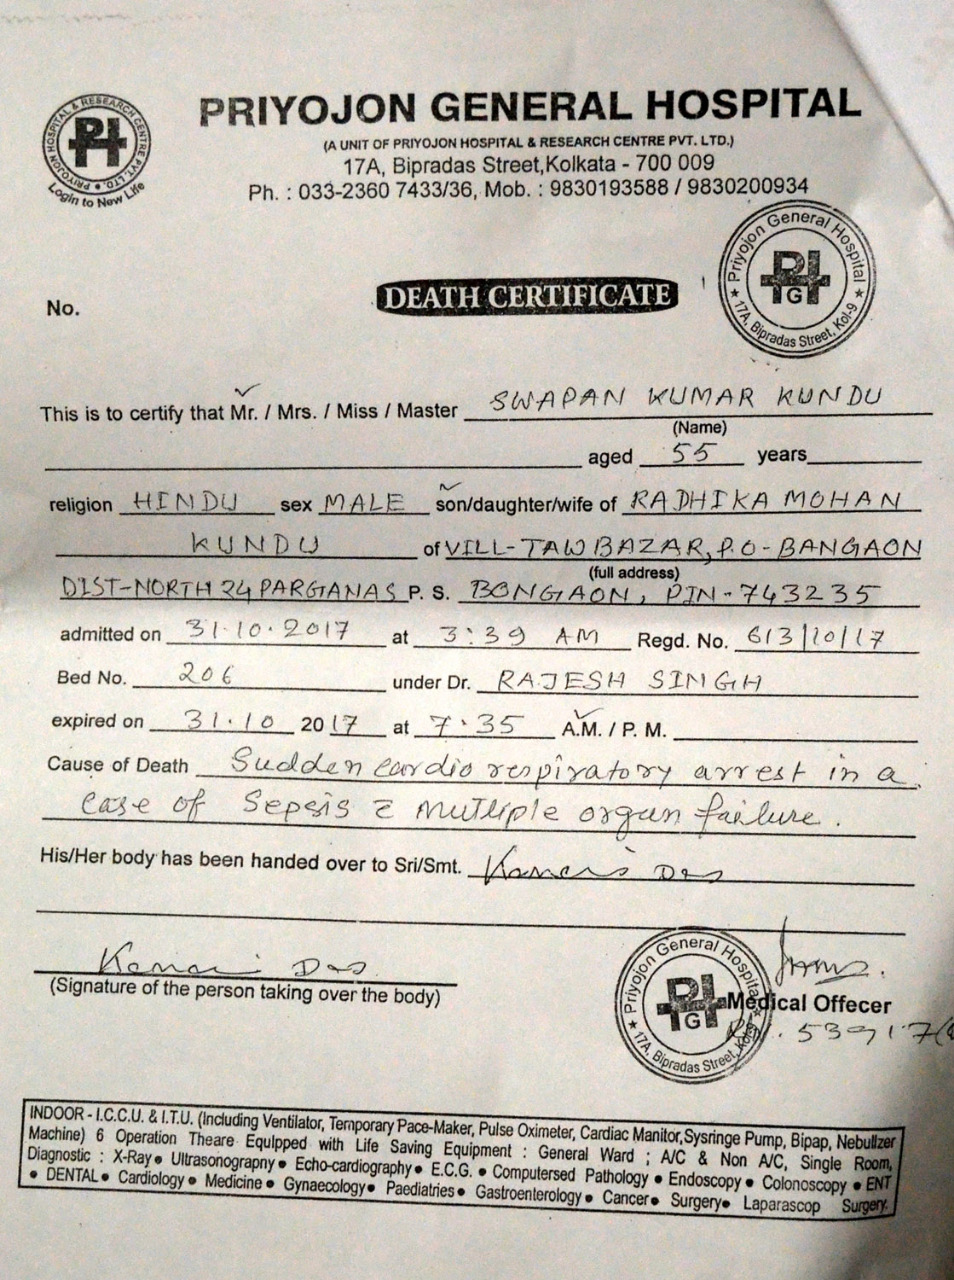 Anjana Kundu has said her husband died of dengue but his death certificate lists cardio-respiratory arrest and multi-organ failure as cause of death.